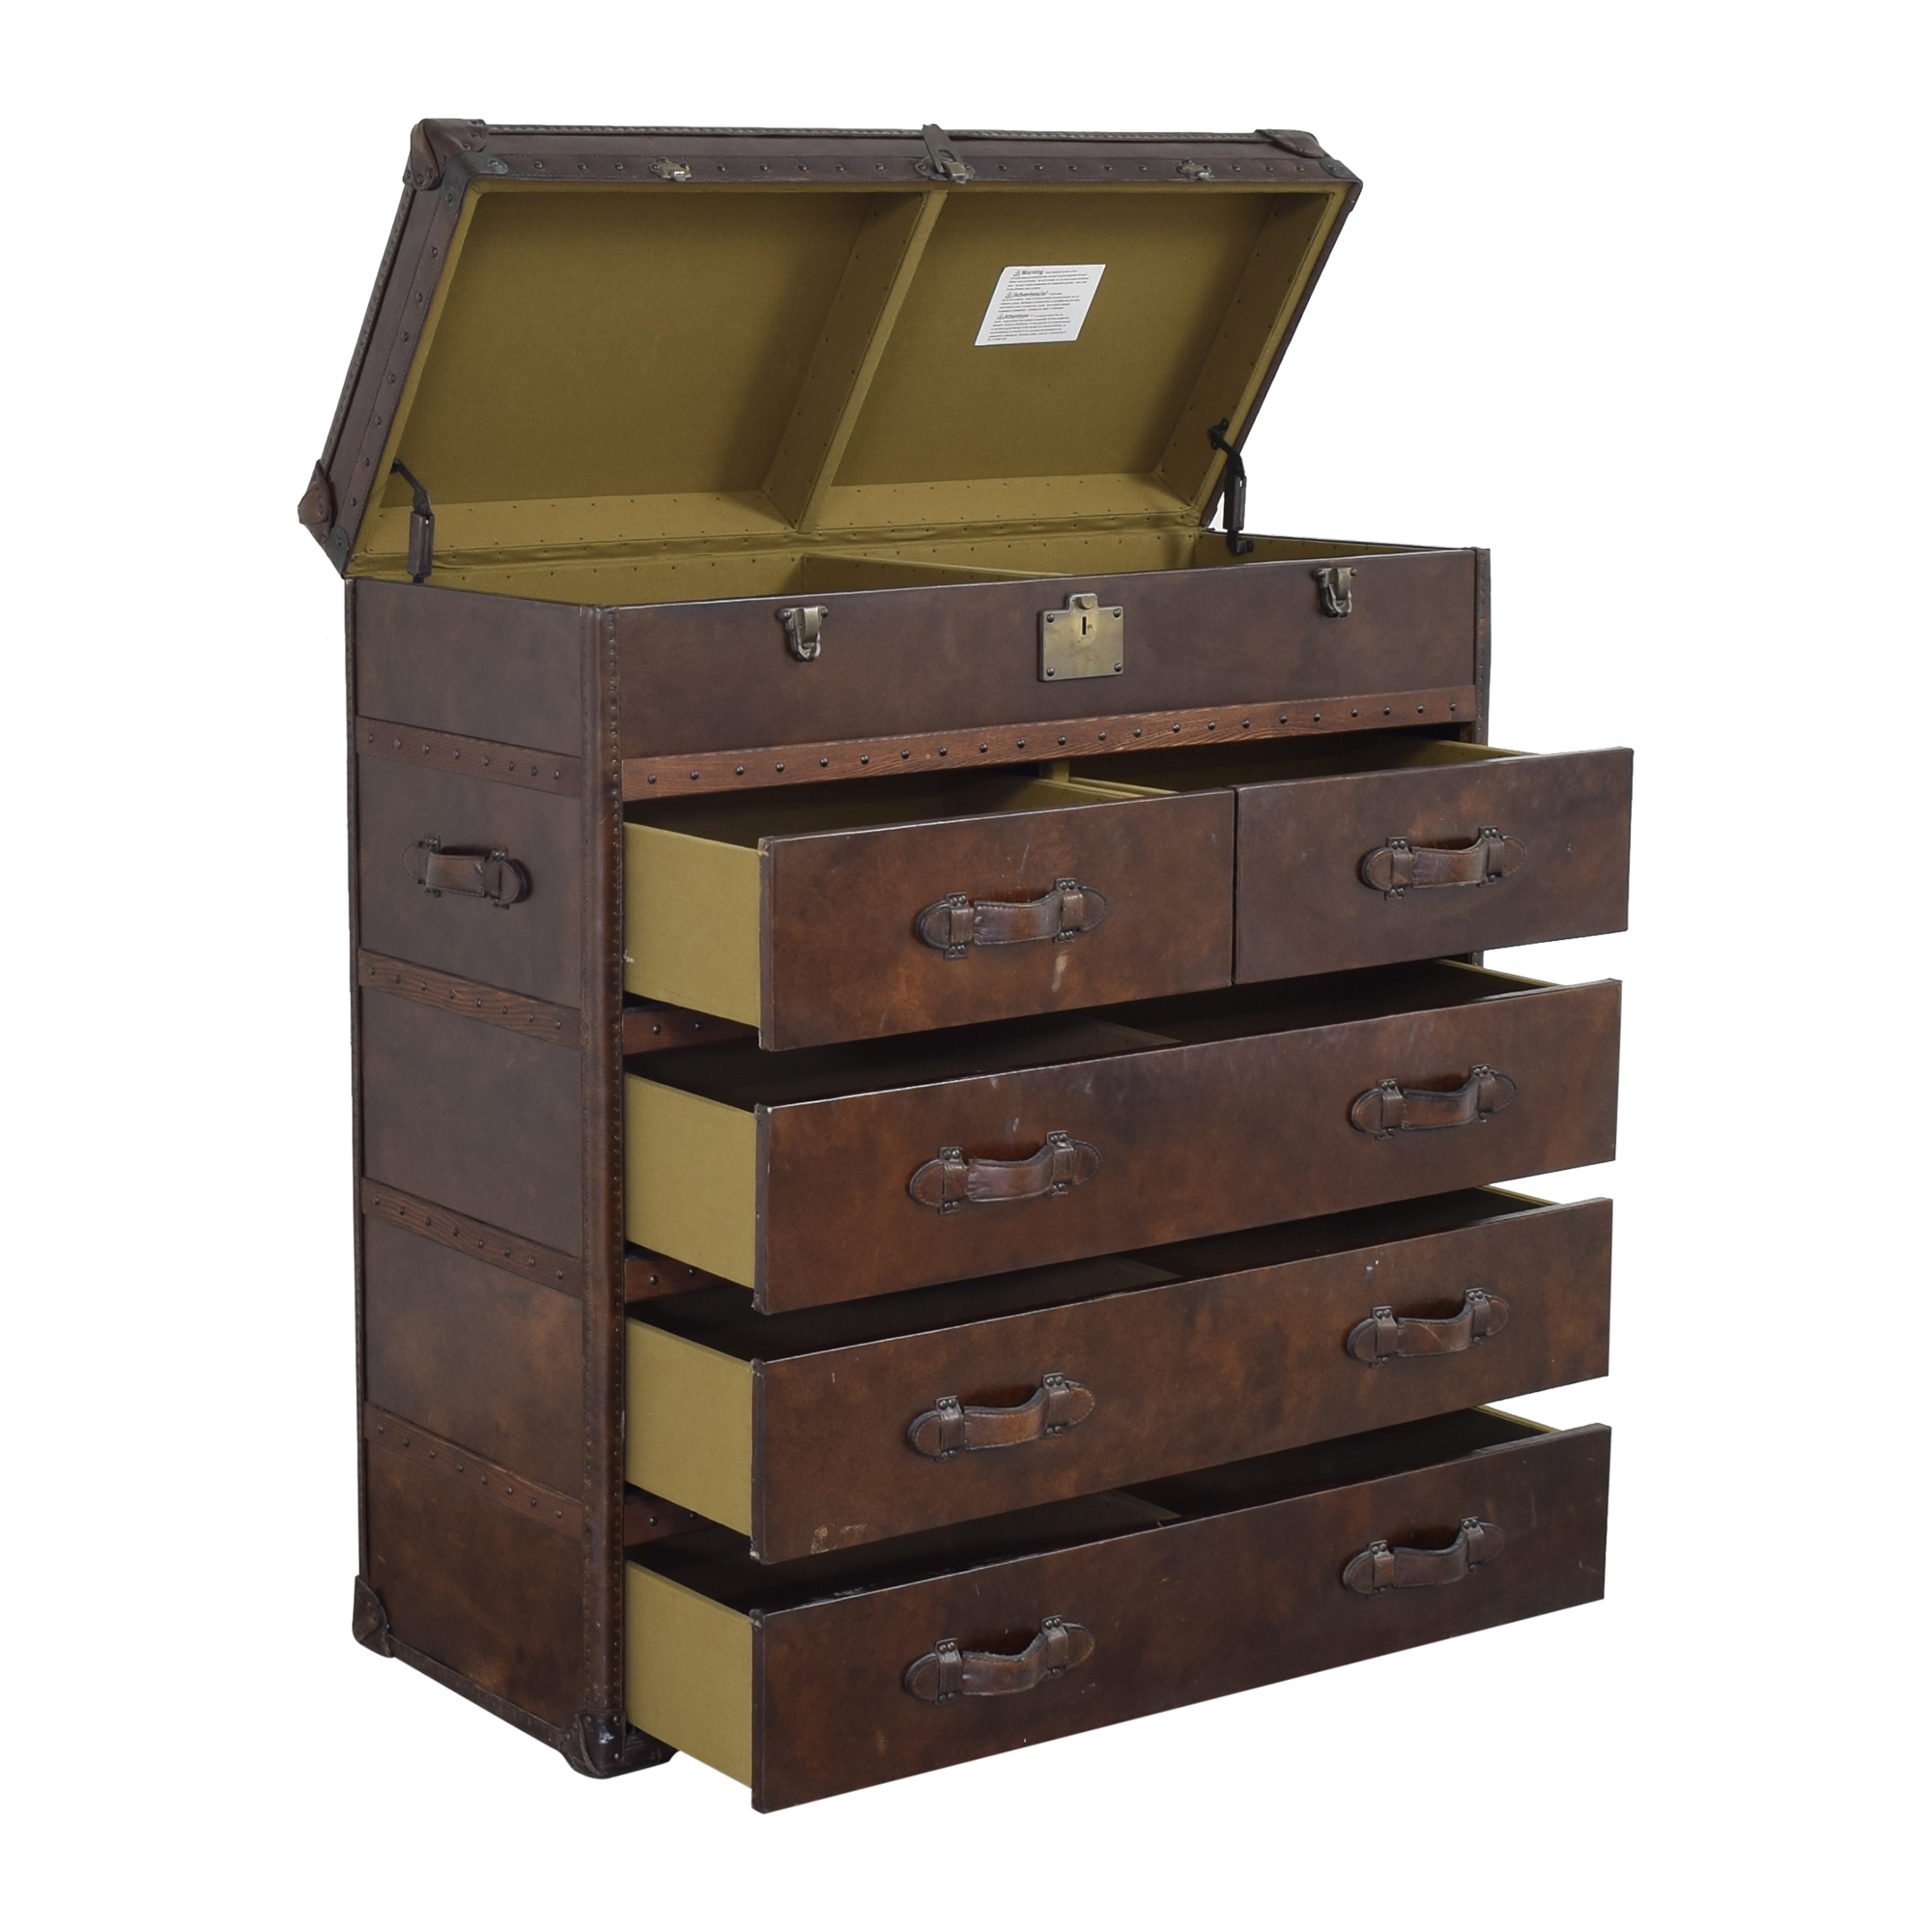 Restoration Hardware Restoration Hardware Mayfair Steamer Trunk Chest on sale